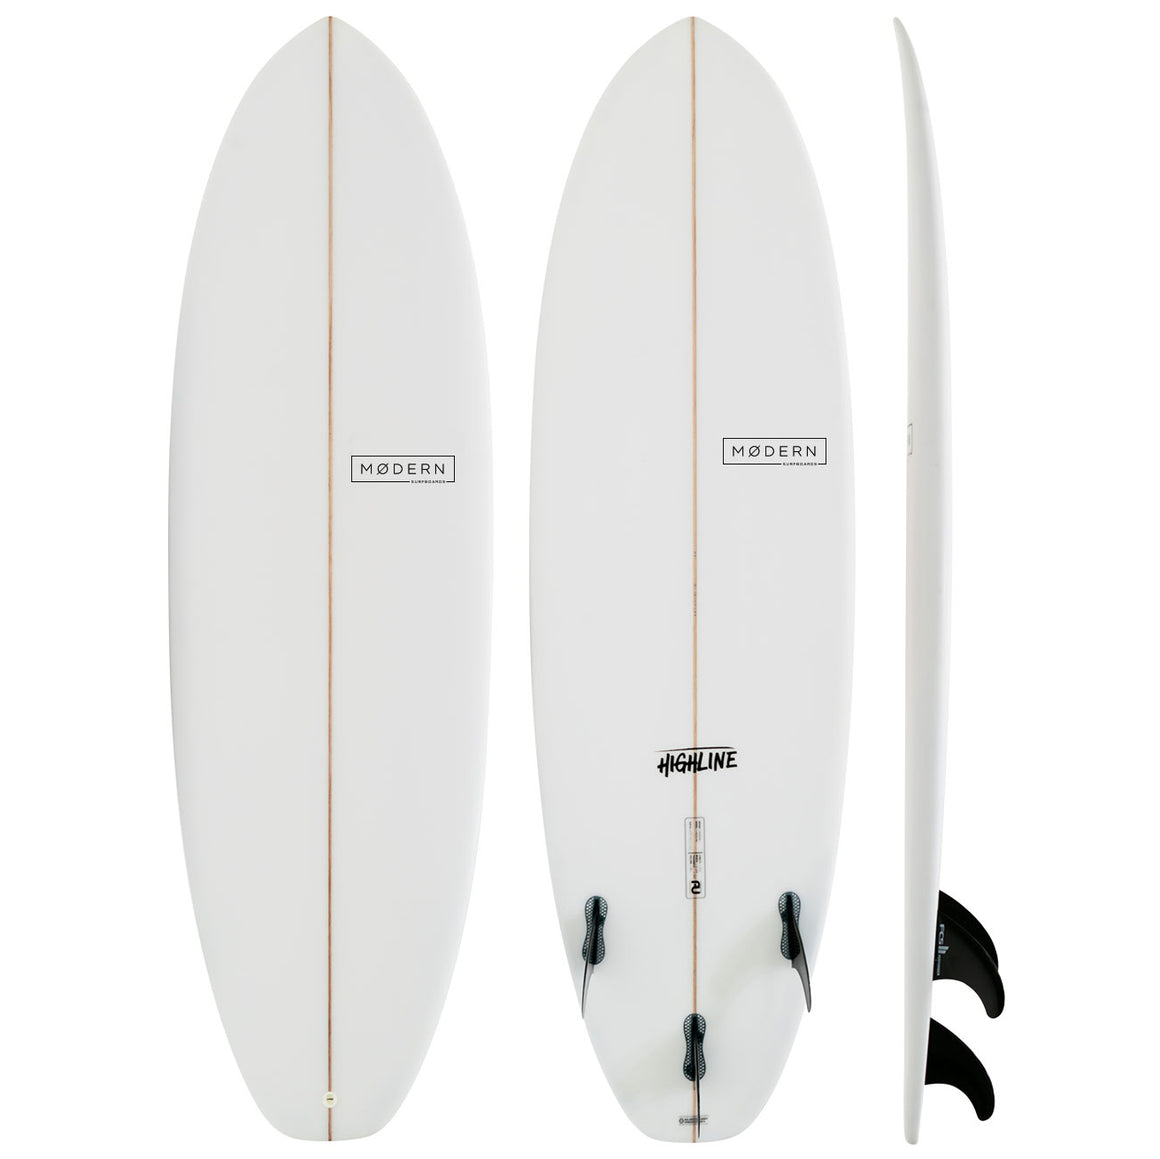 Modern Highline 6'2 PU Clear